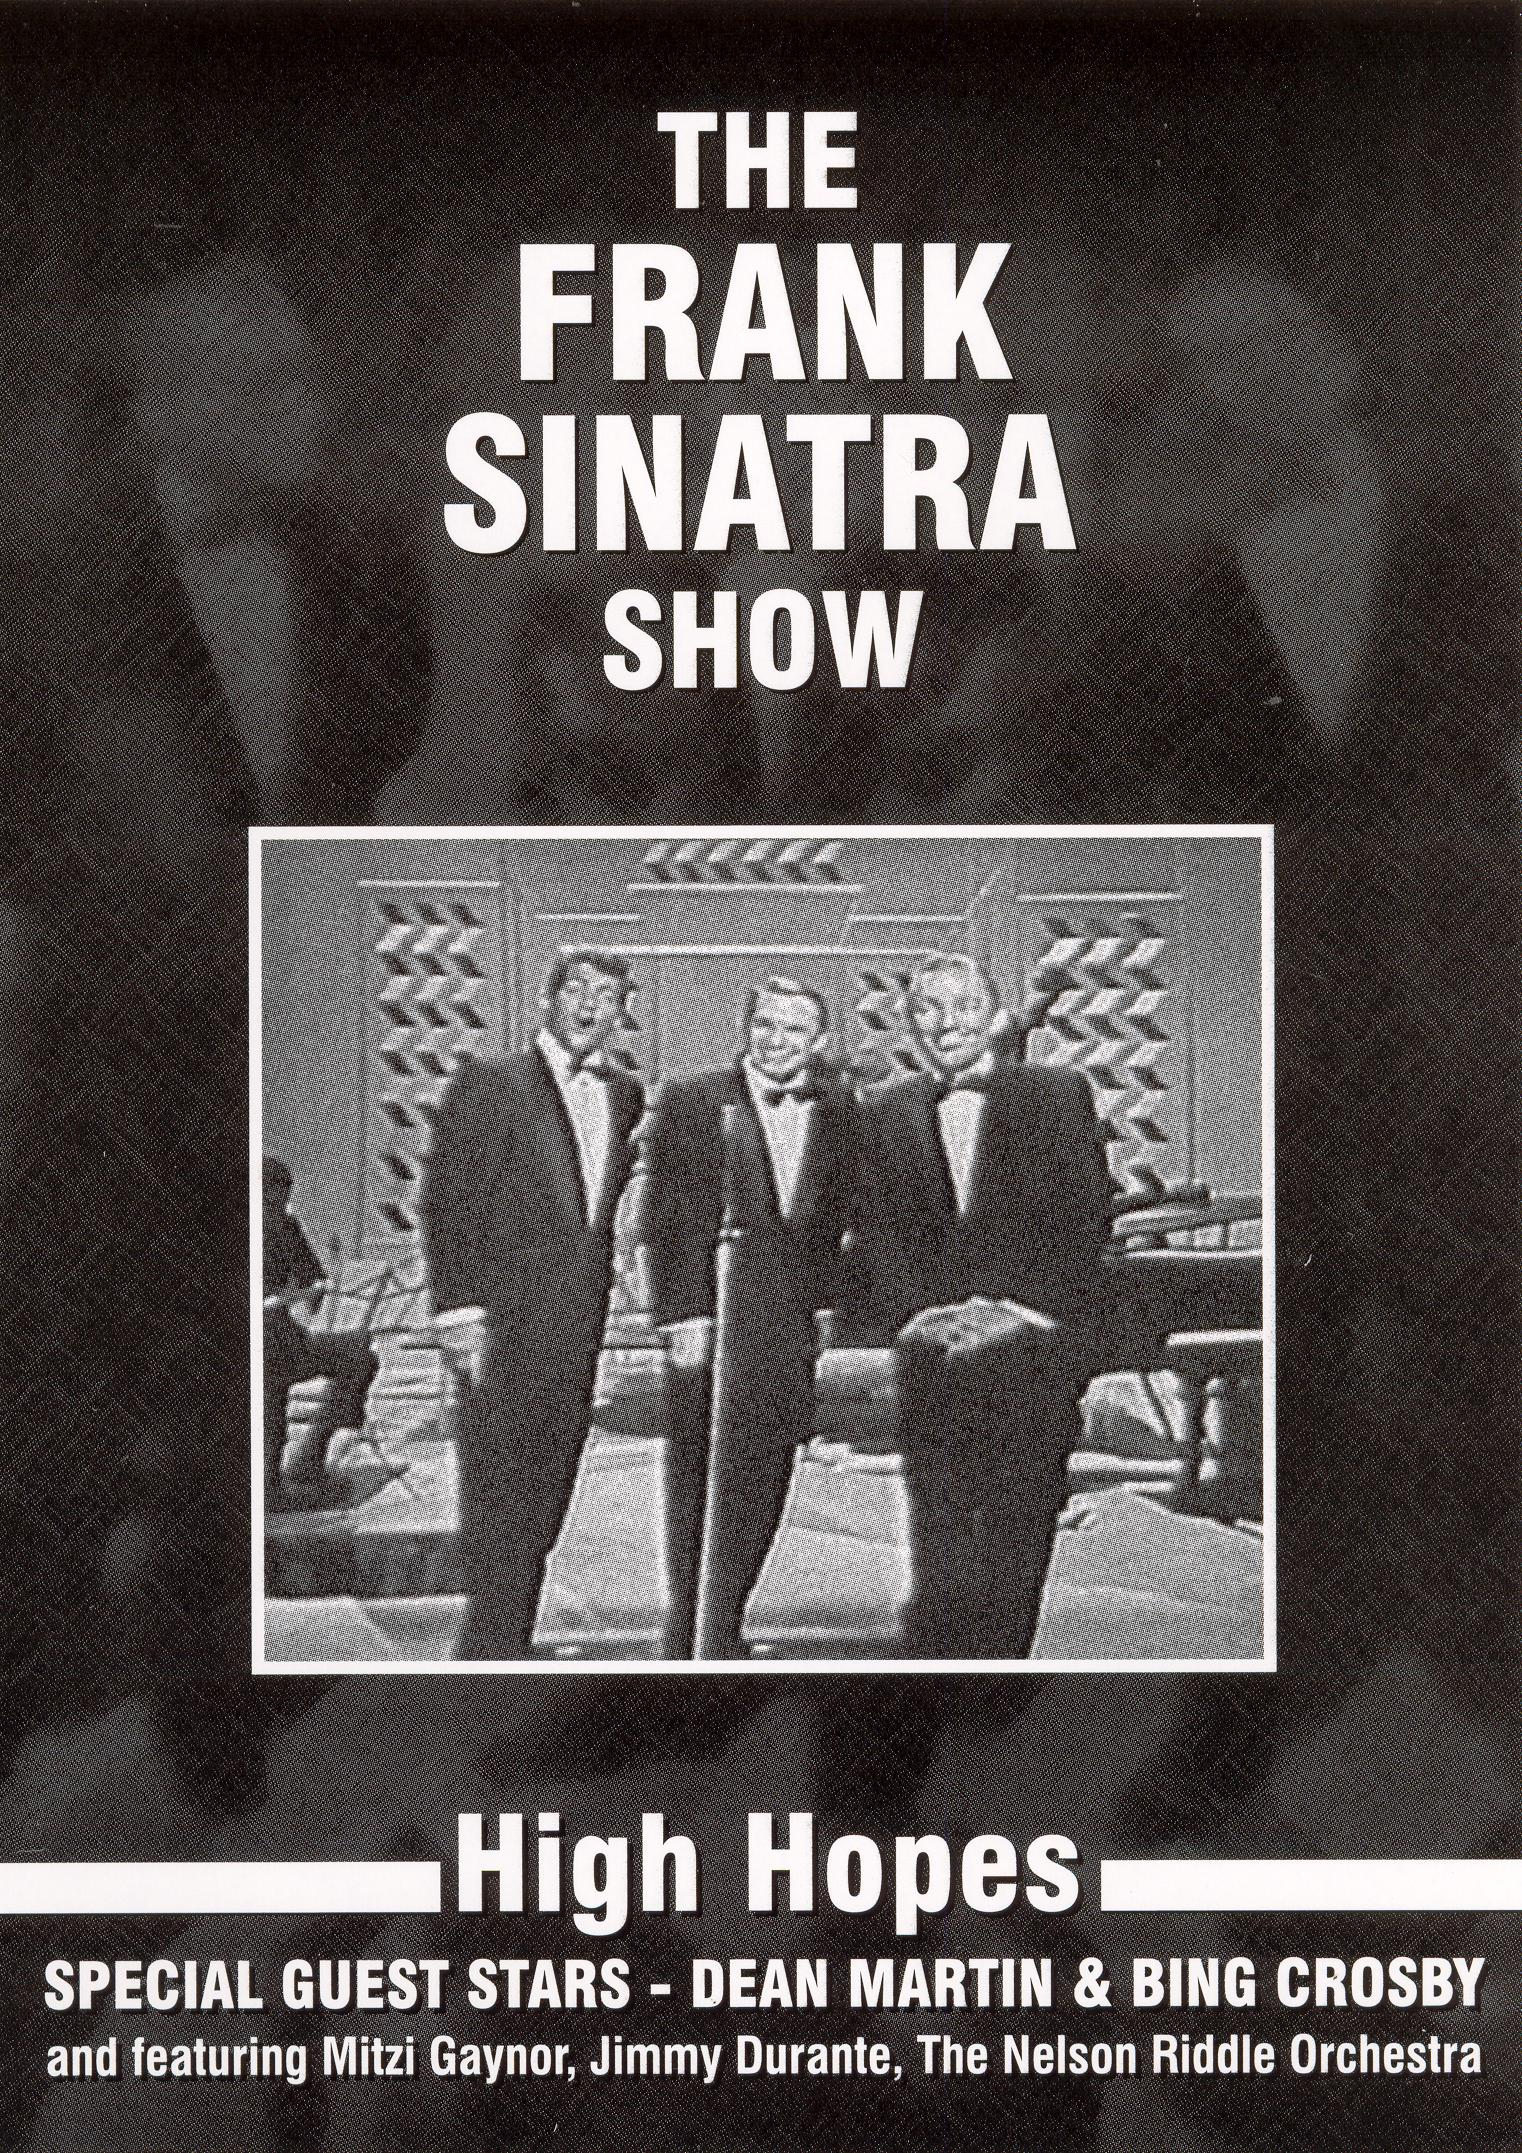 The Frank Sinatra Show: High Hopes - With Bing Crosby and Dean Martin